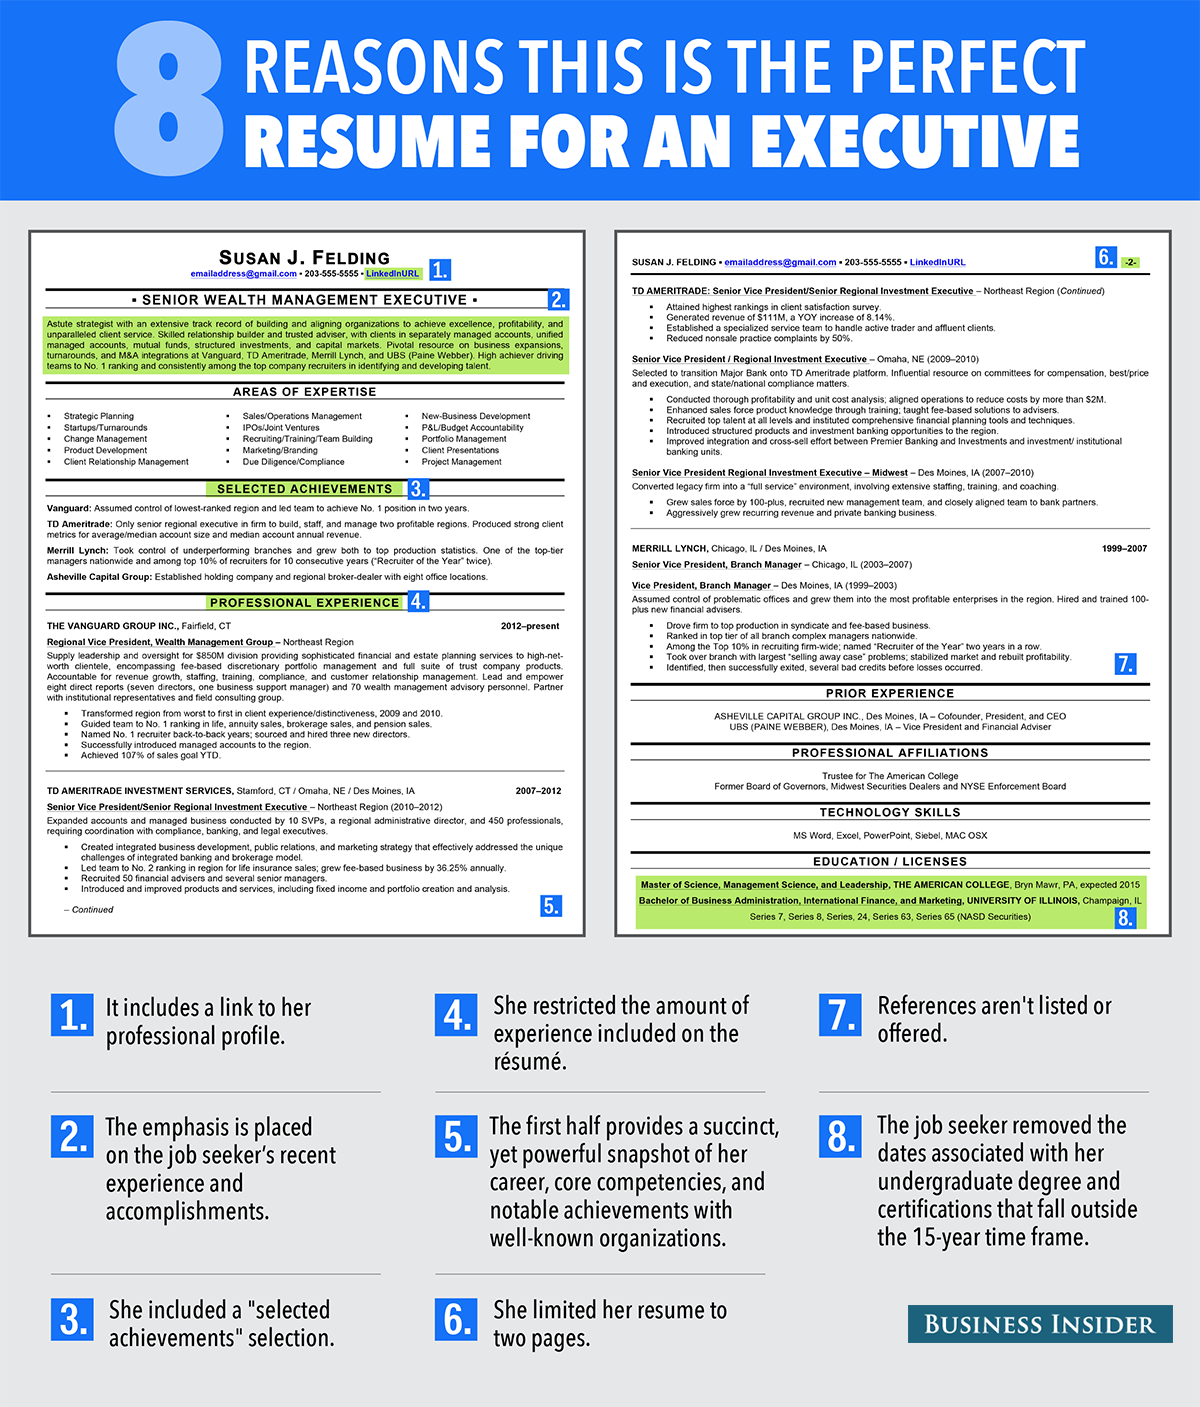 8 Reasons This Is An Ideal Resume For Someone With A Lot Of Work